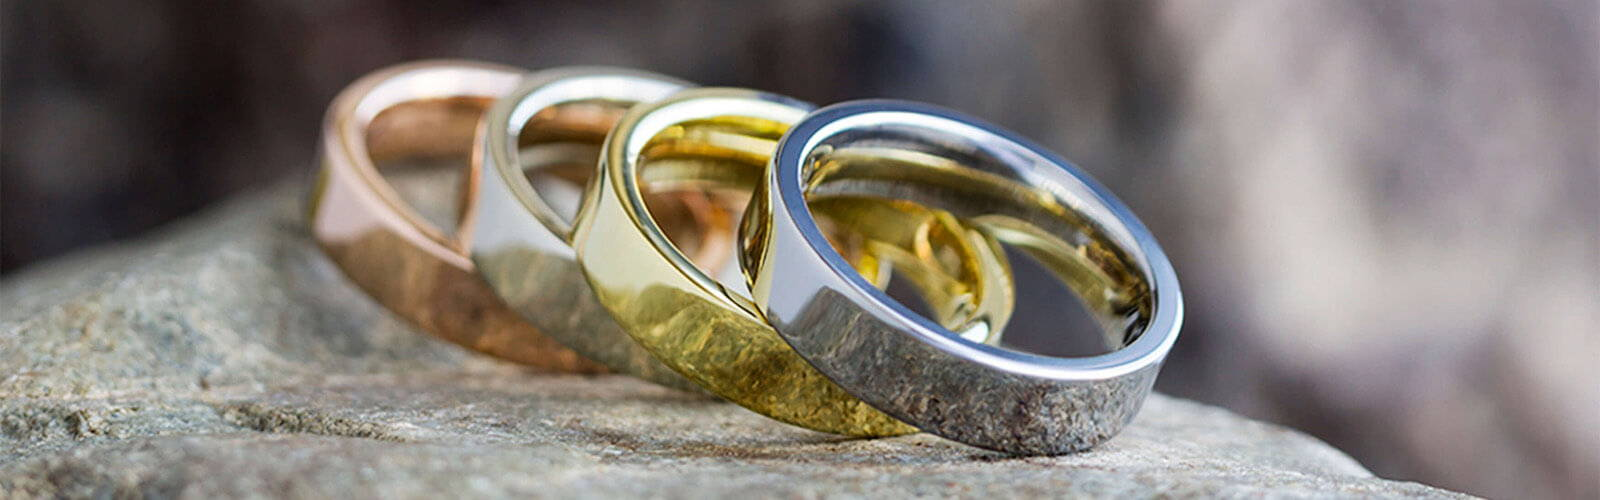 Gold Rings in All Colors